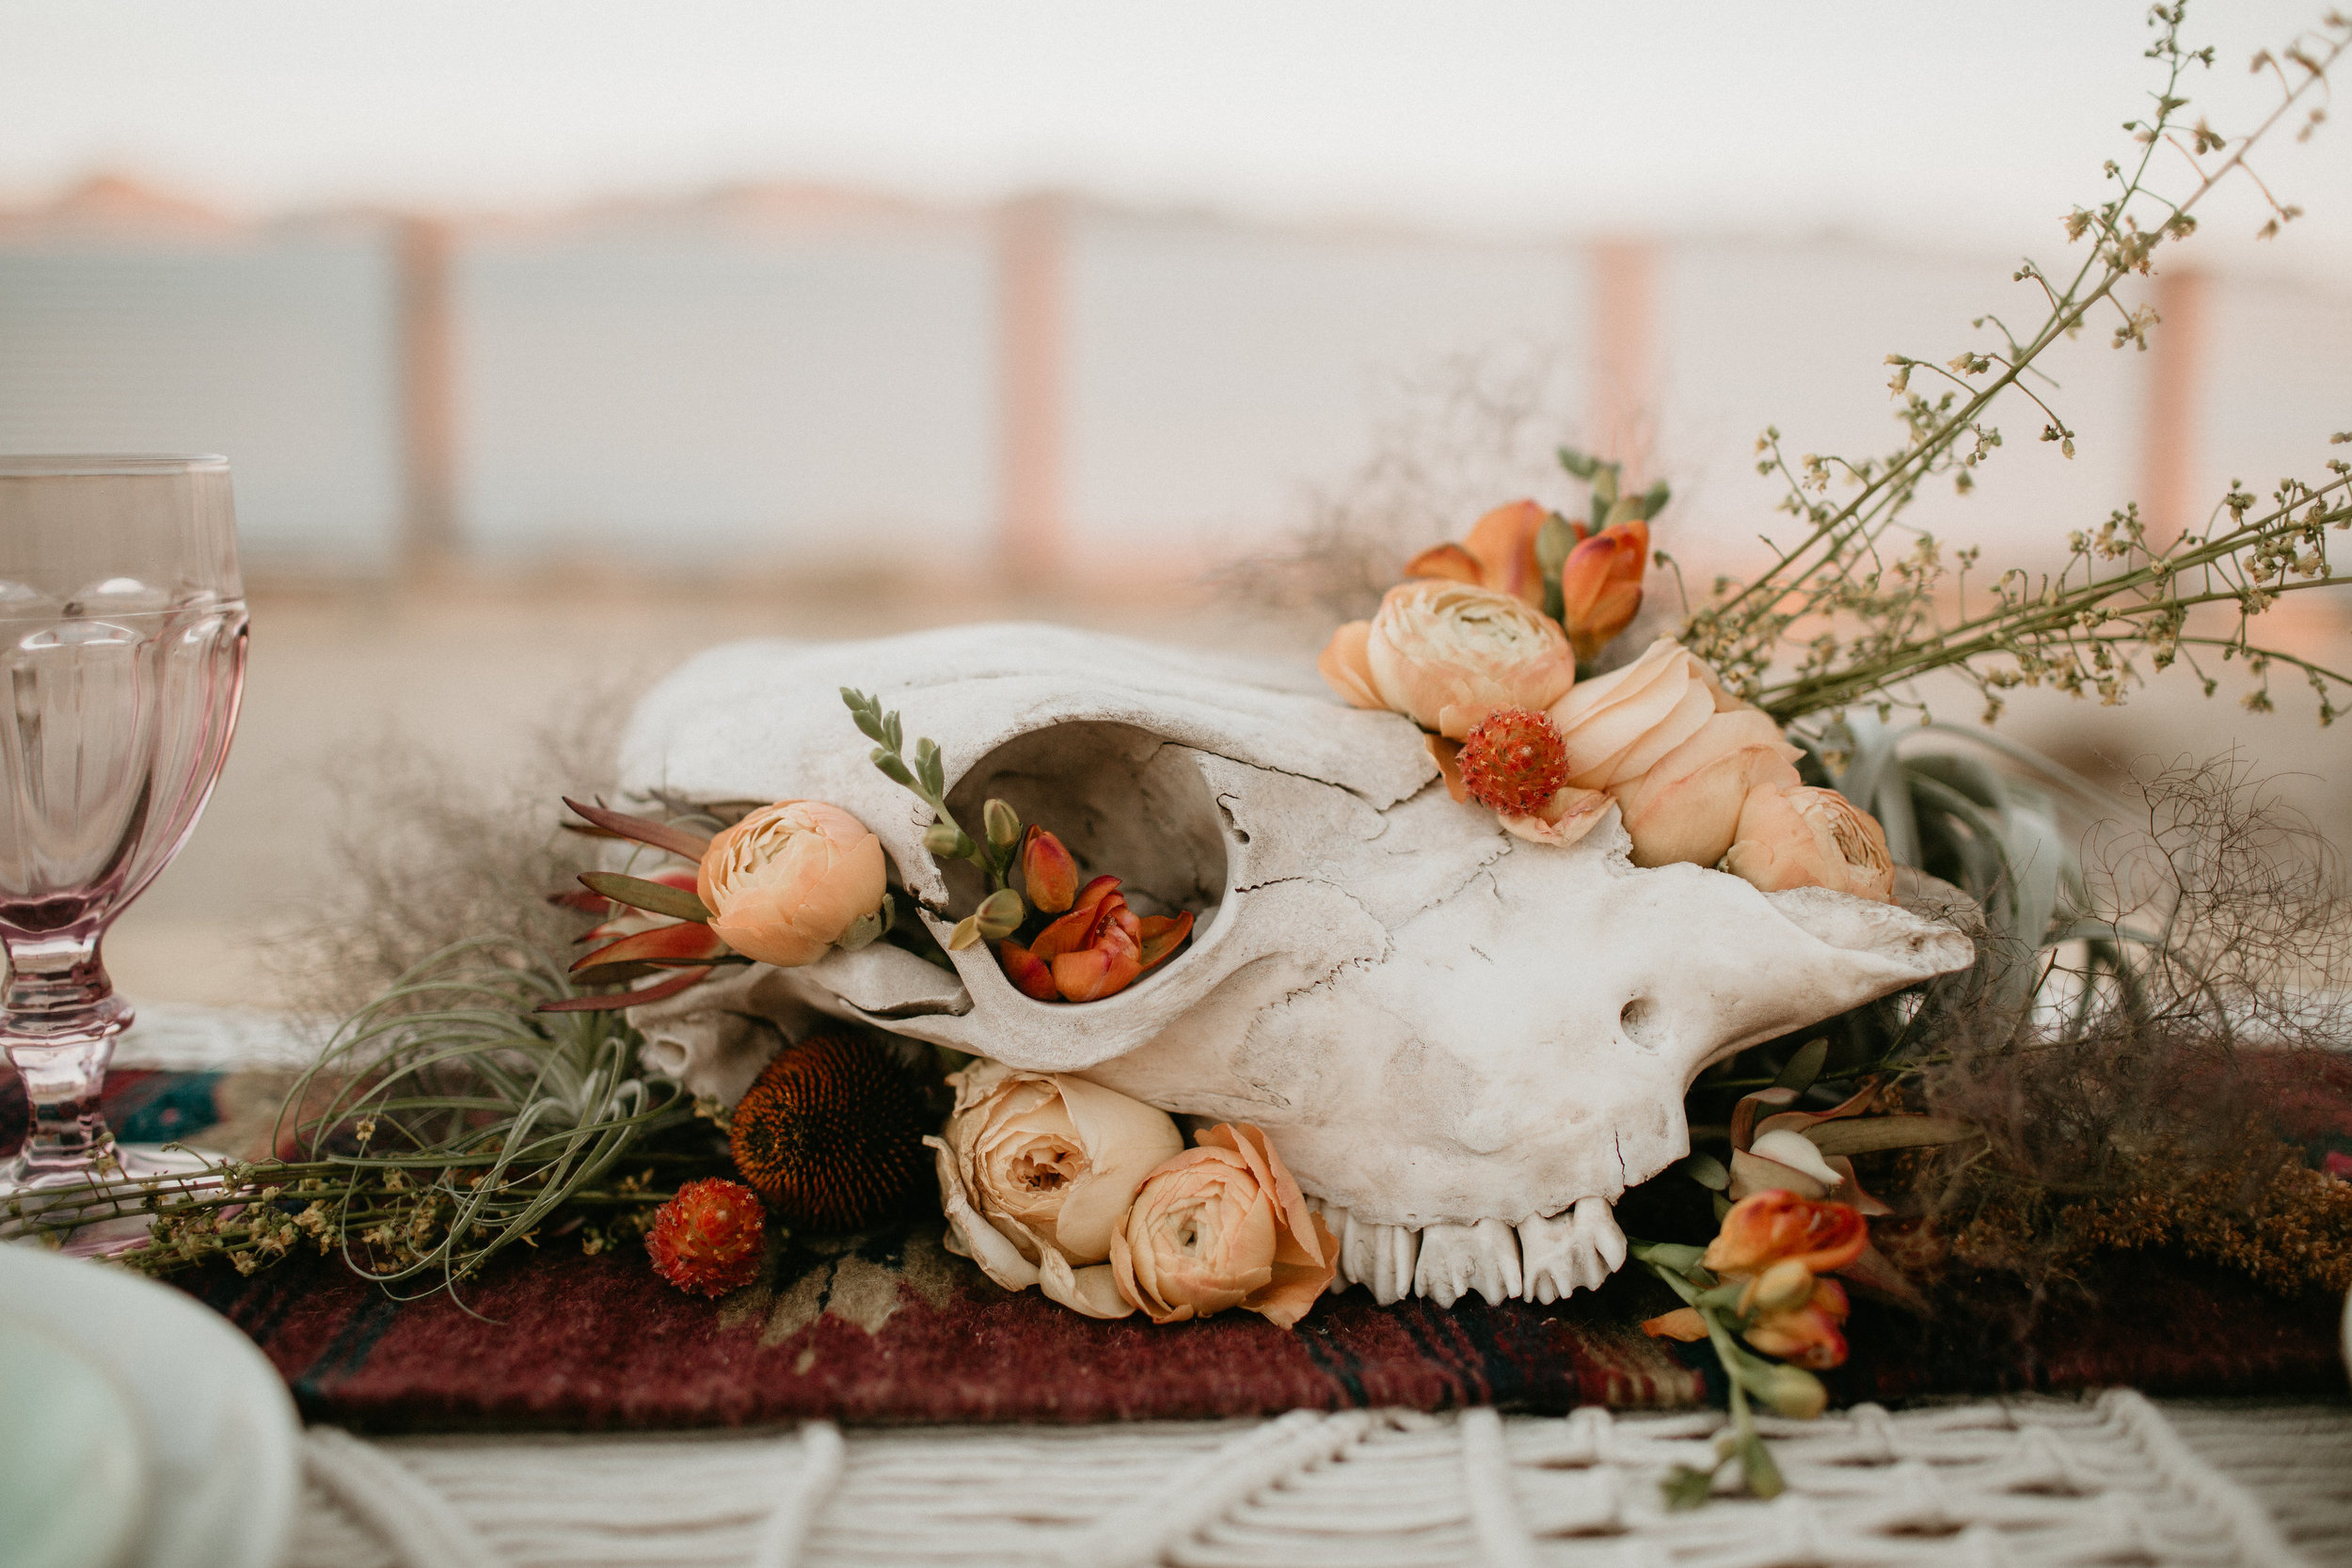 skull centerpiece with airplant #lrqcfloral #airplant